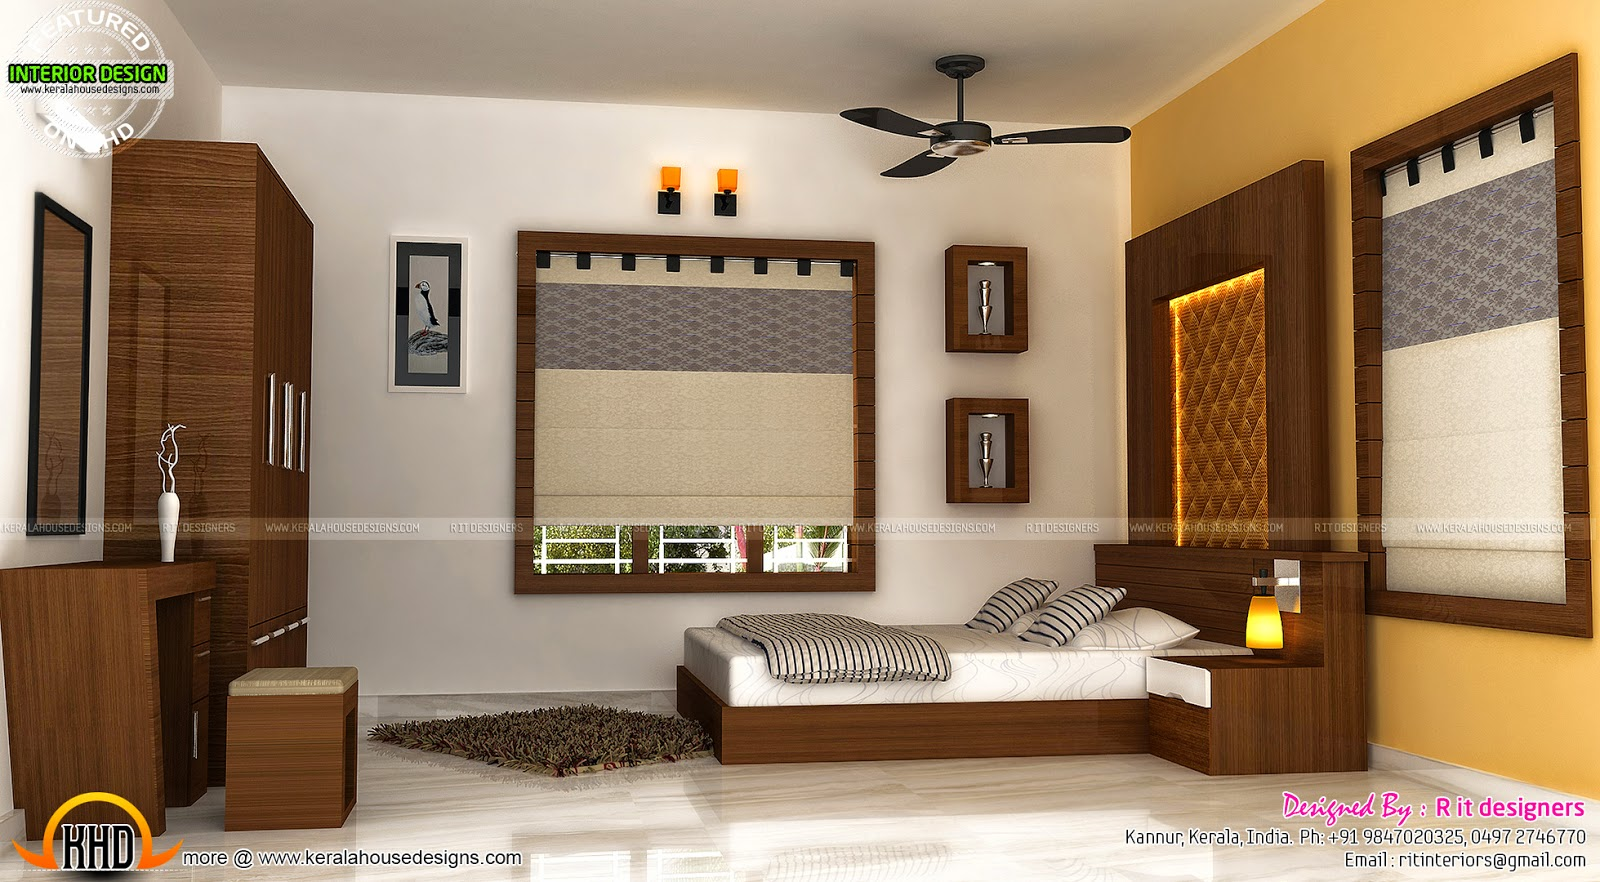 Staircase bedroom dining interiors kerala home design for Living room interior in kerala